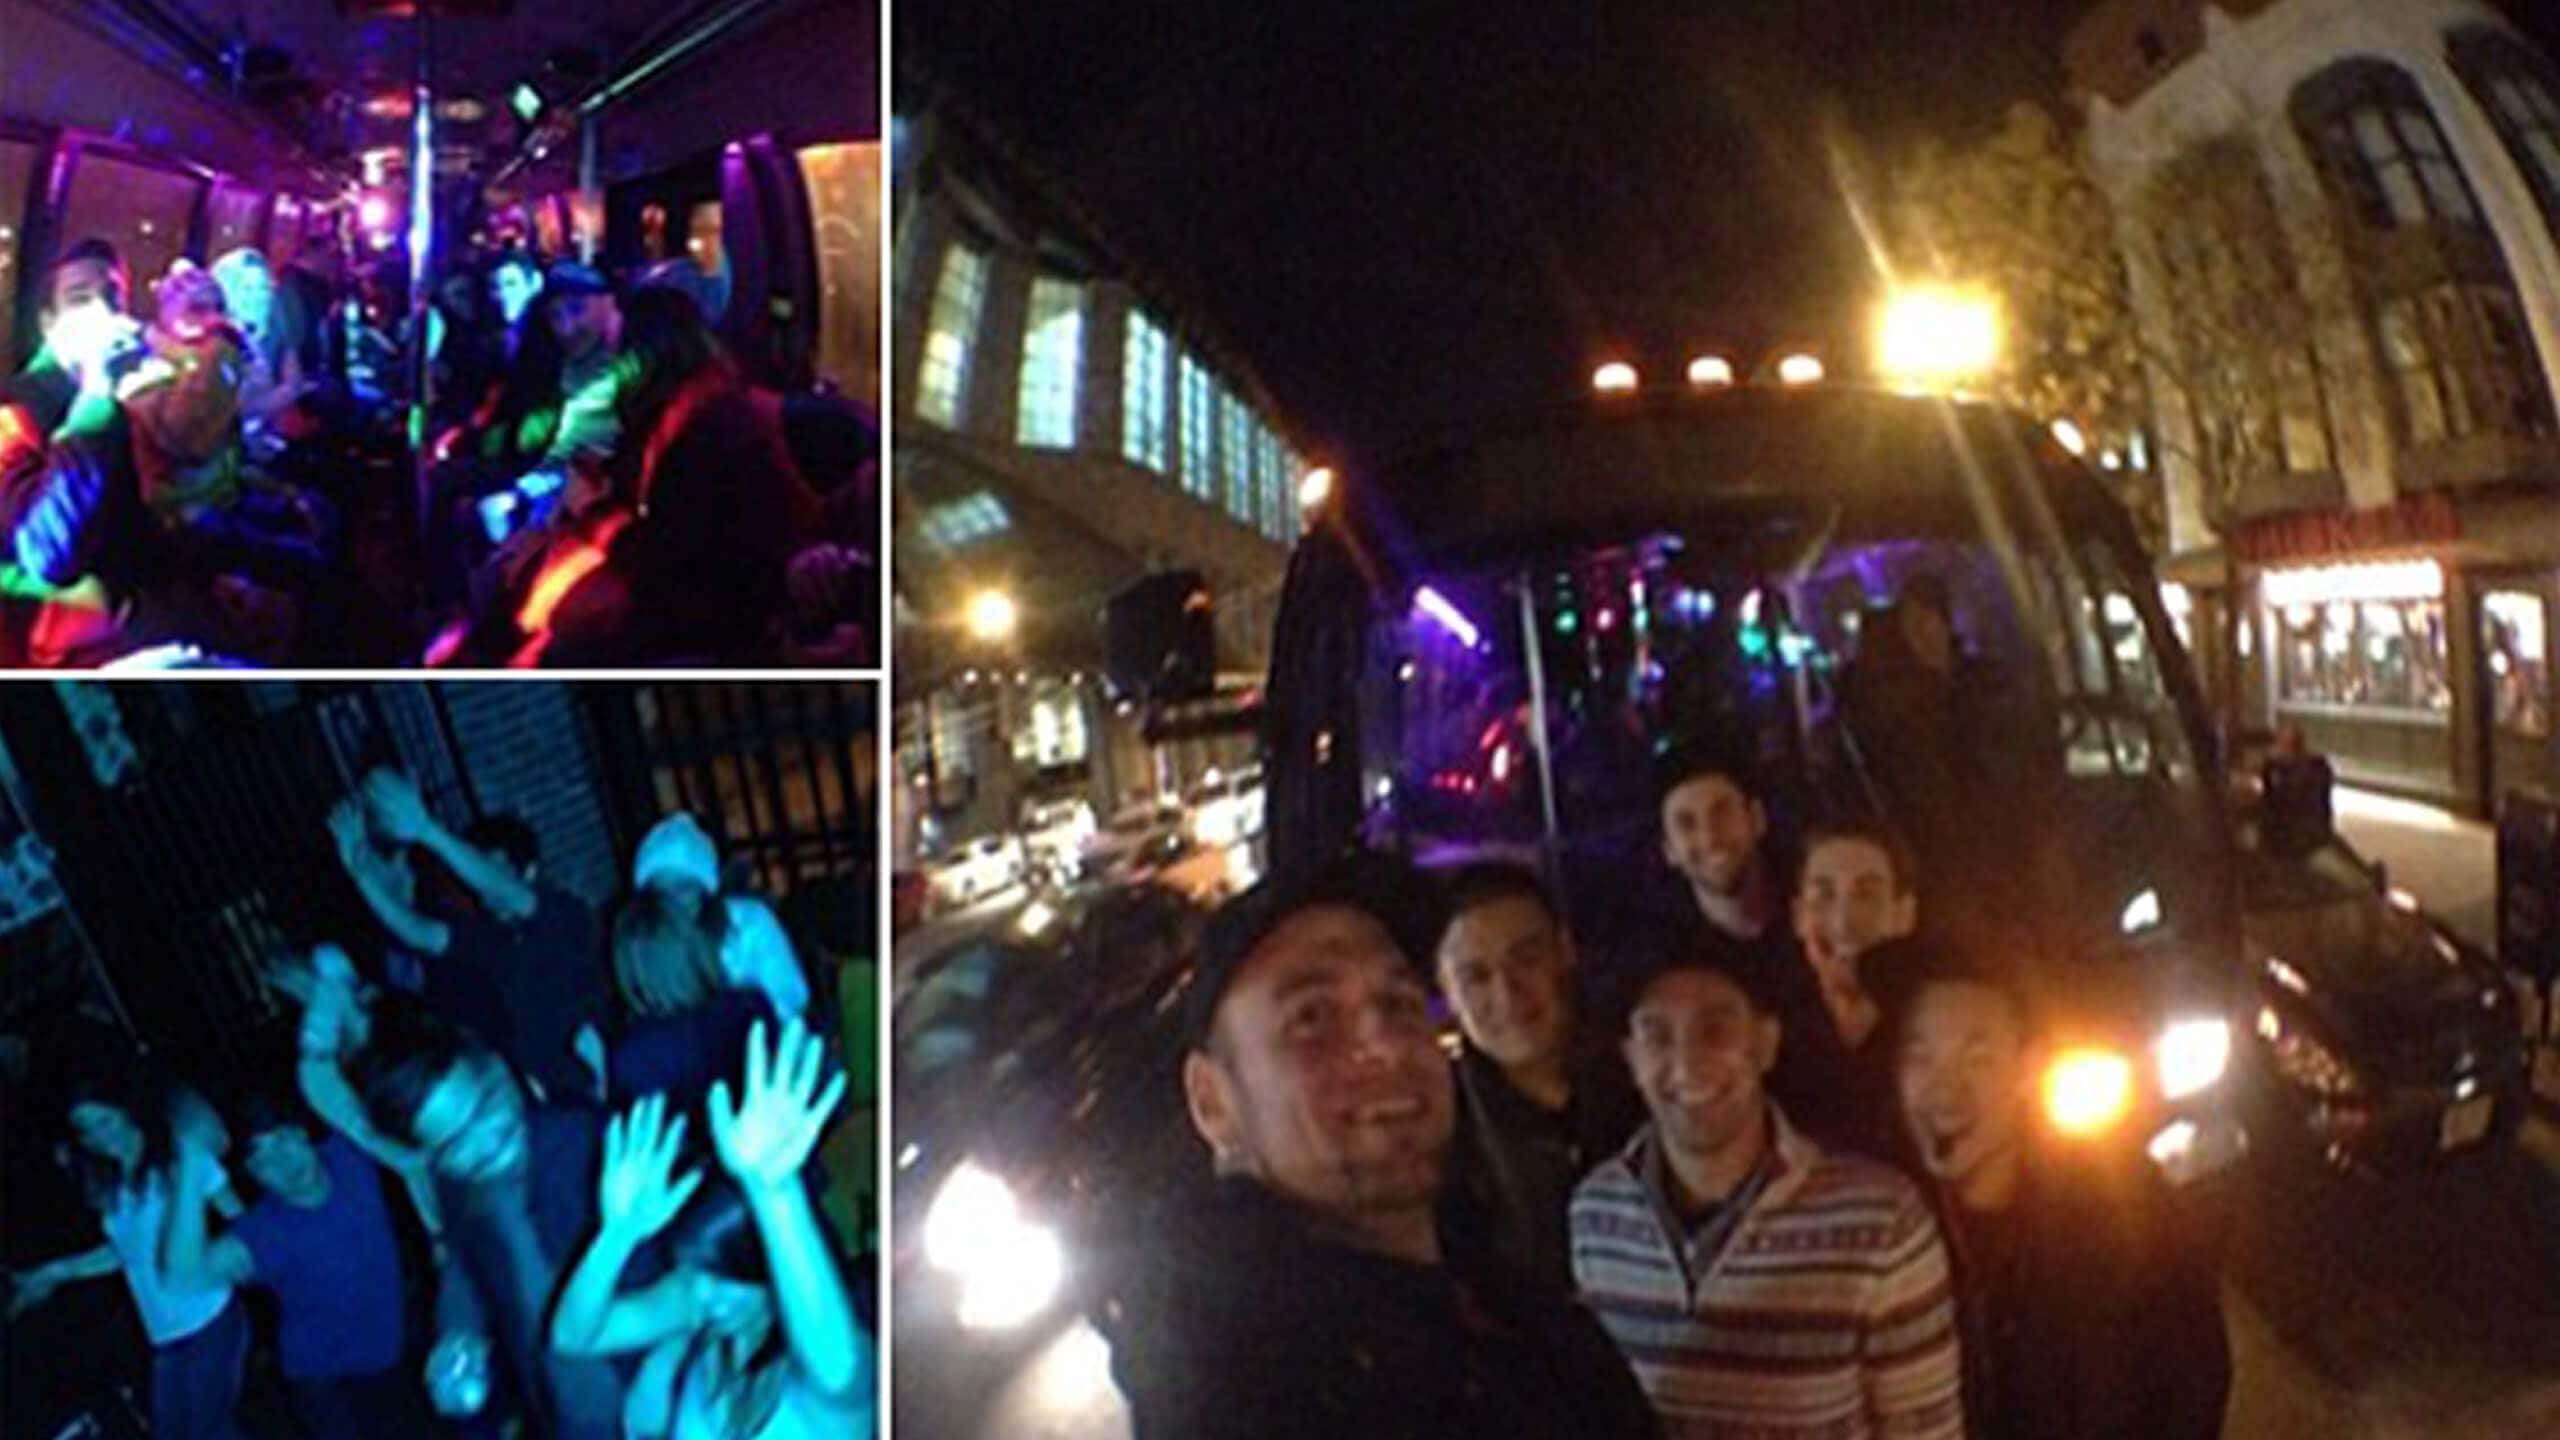 HOLIDAY PARTY BUS